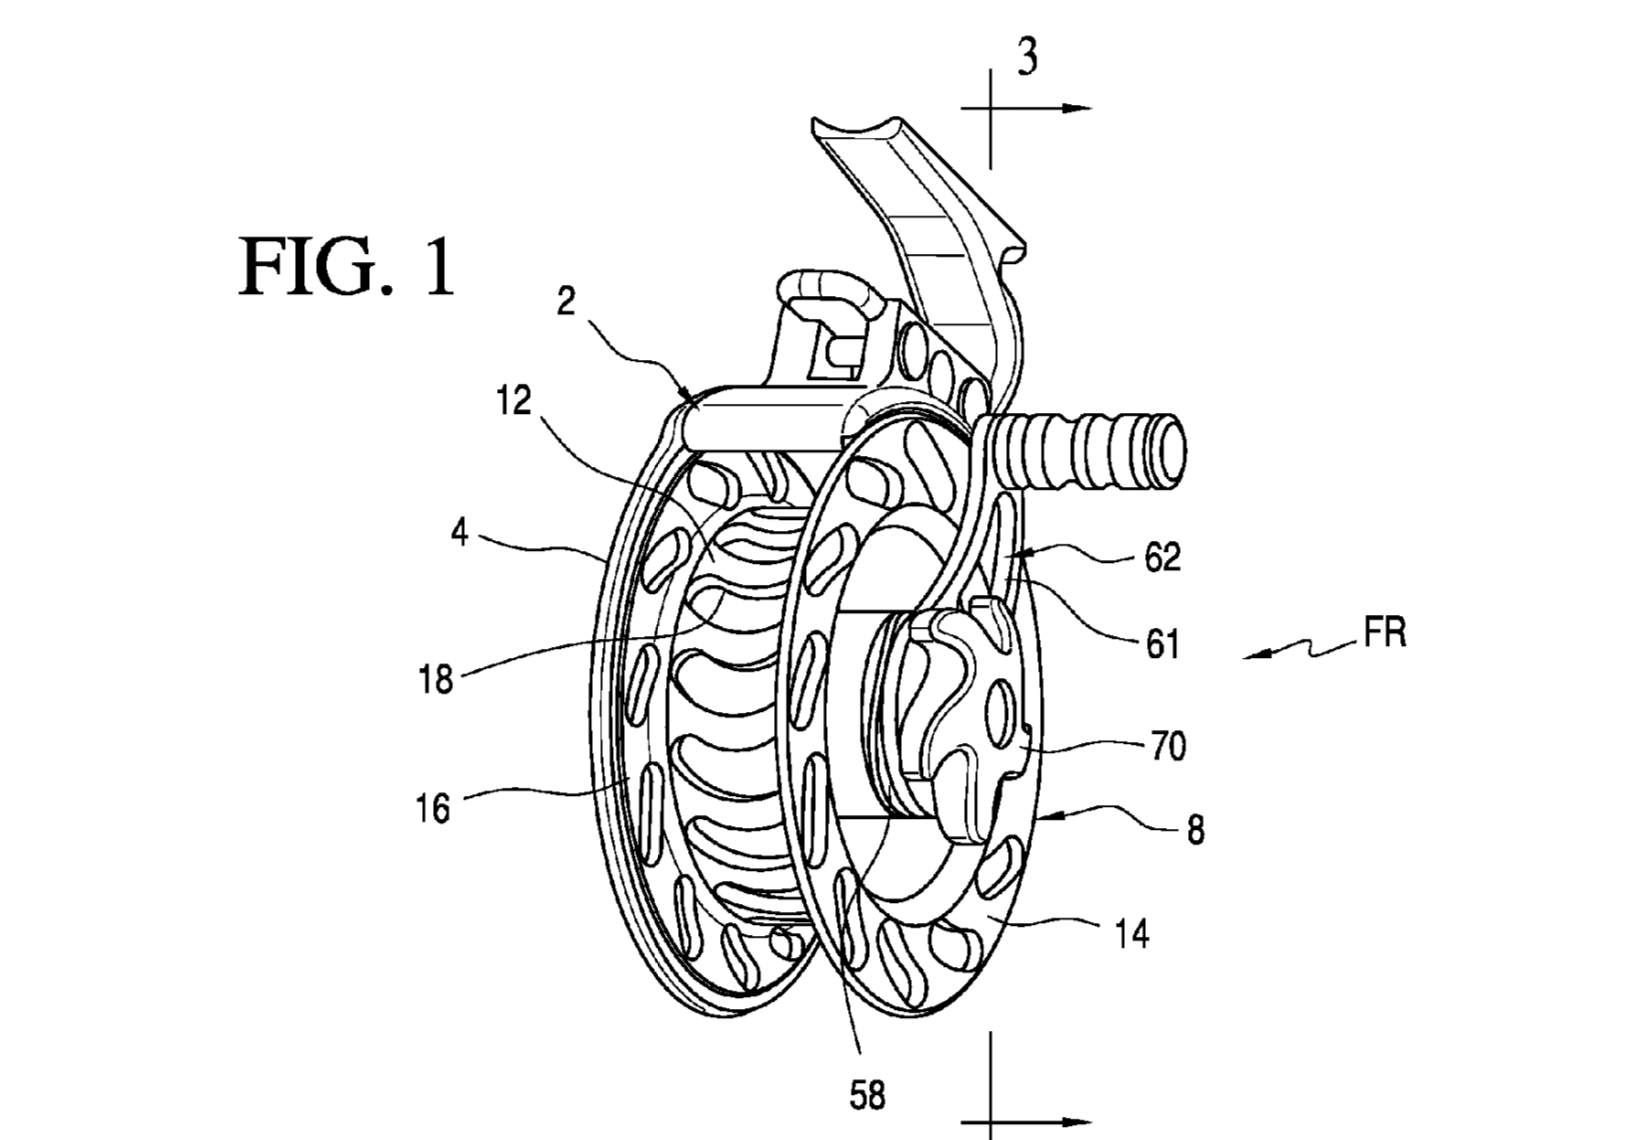 IRT Reels Fly Reel Handle Drag System Patent